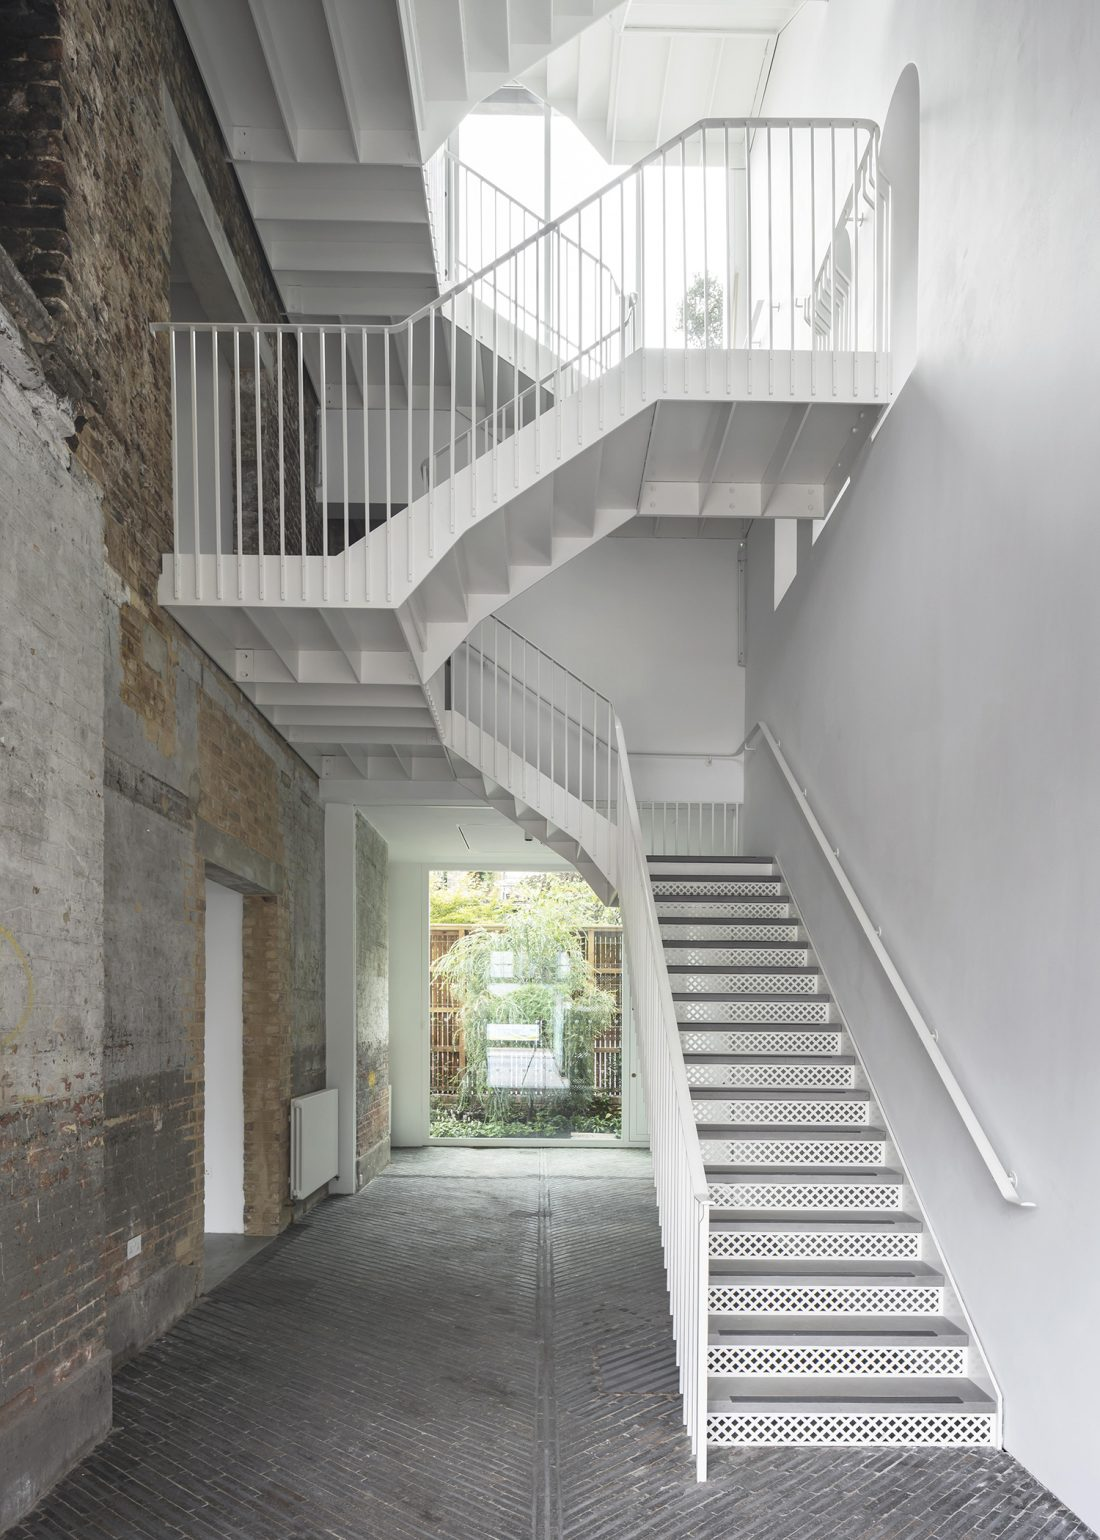 <p>South London Gallery Fire Station interior view. Courtesy 6a architects. Photo: Johan Dehlin.</p>